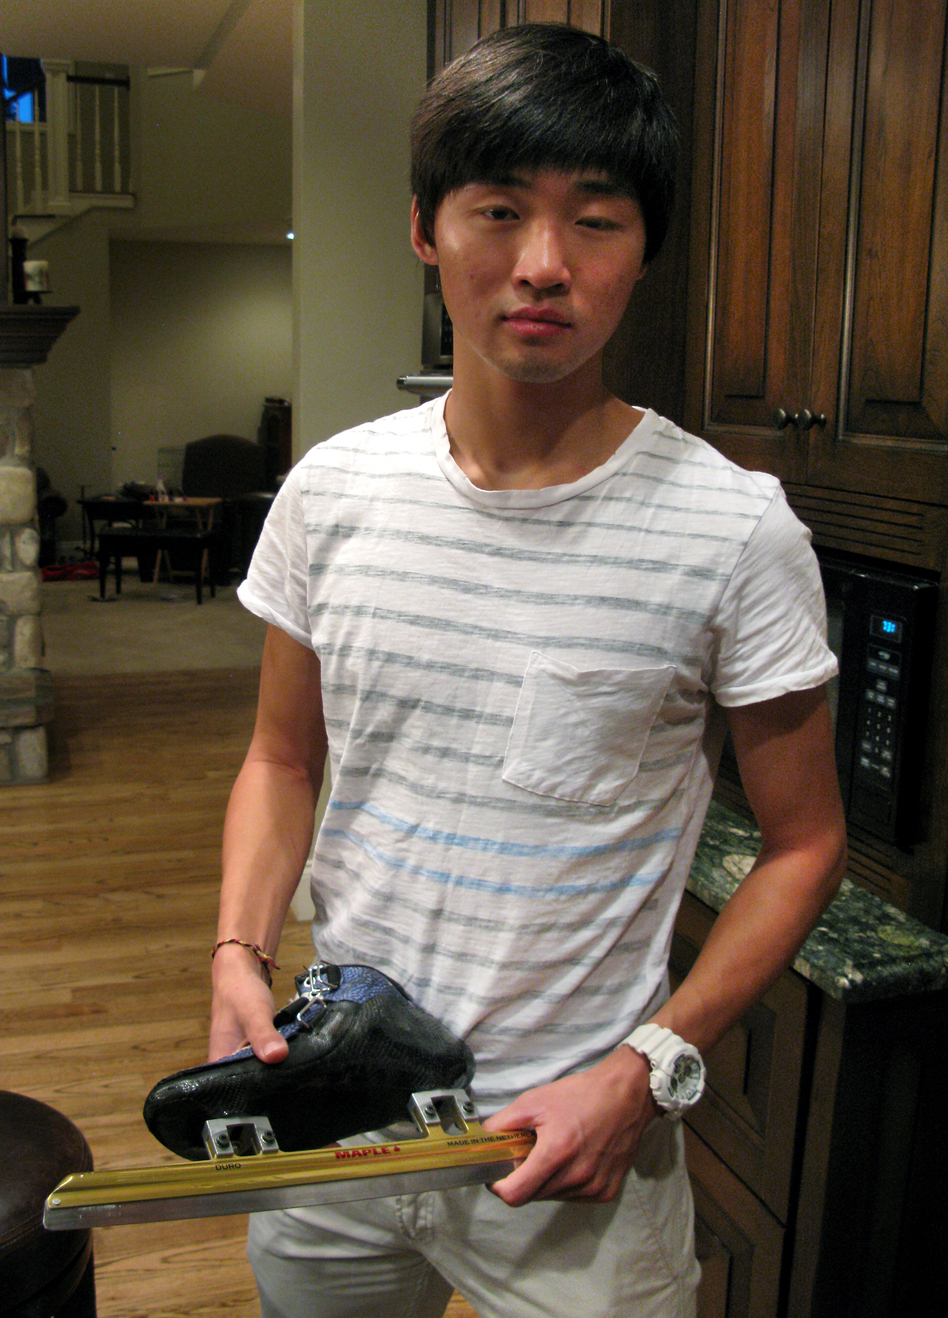 Olympic speedskater Simon Cho holds a short track skate that is similar to the one he sabotaged at an international meet last year. Cho first openly described what he did and why in an interview with NPR this week at his attorney's home outside Salt Lake City. (NPR)